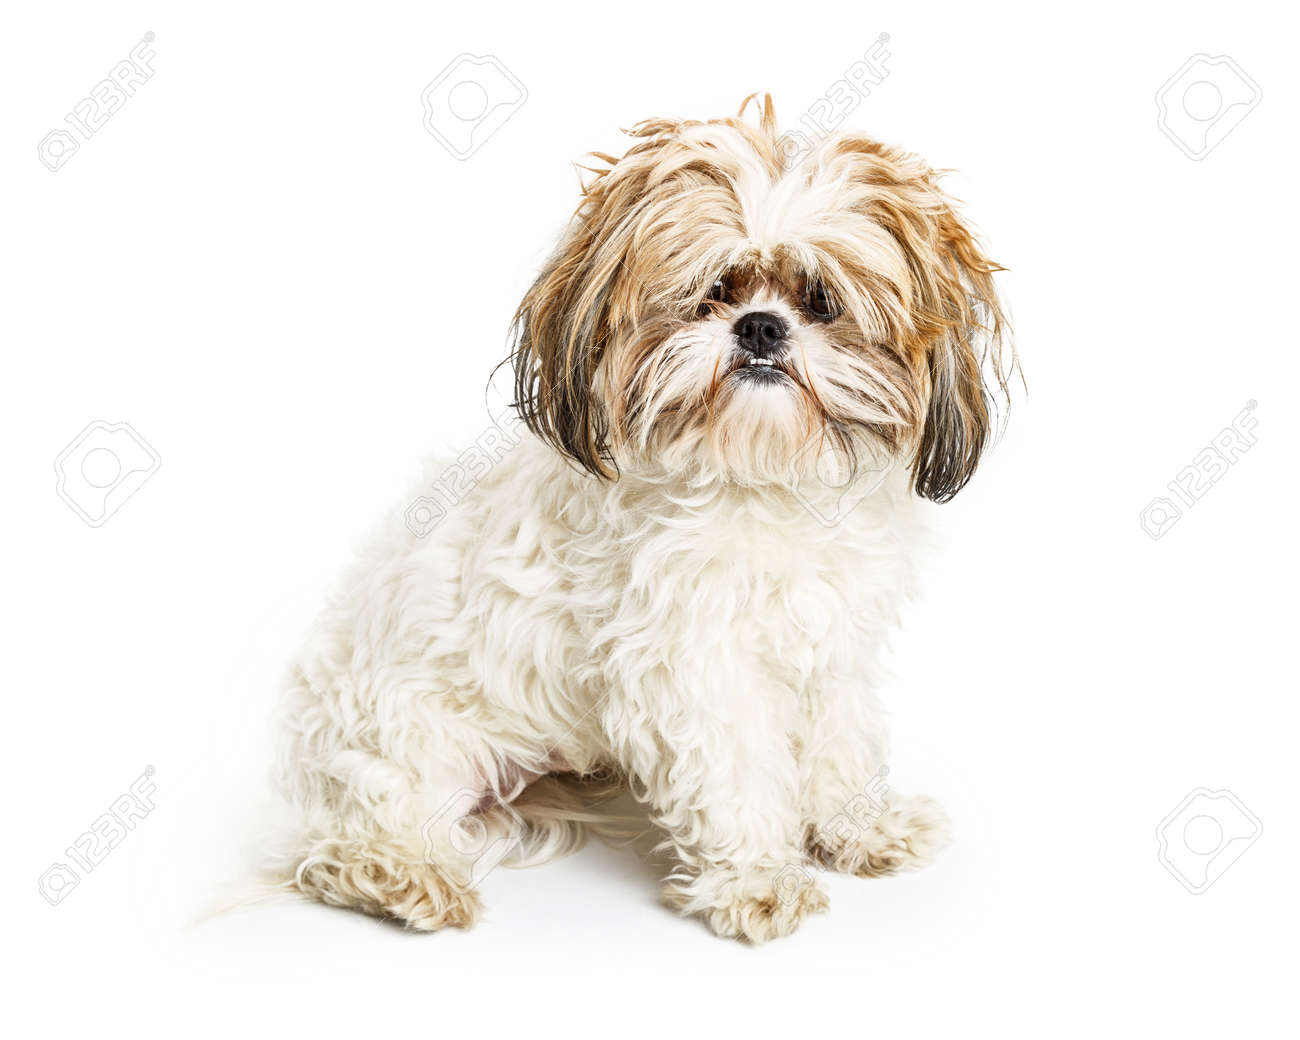 Shih Tzu Breed Dog With Long Messy Hair In Need Of Brushing Stock